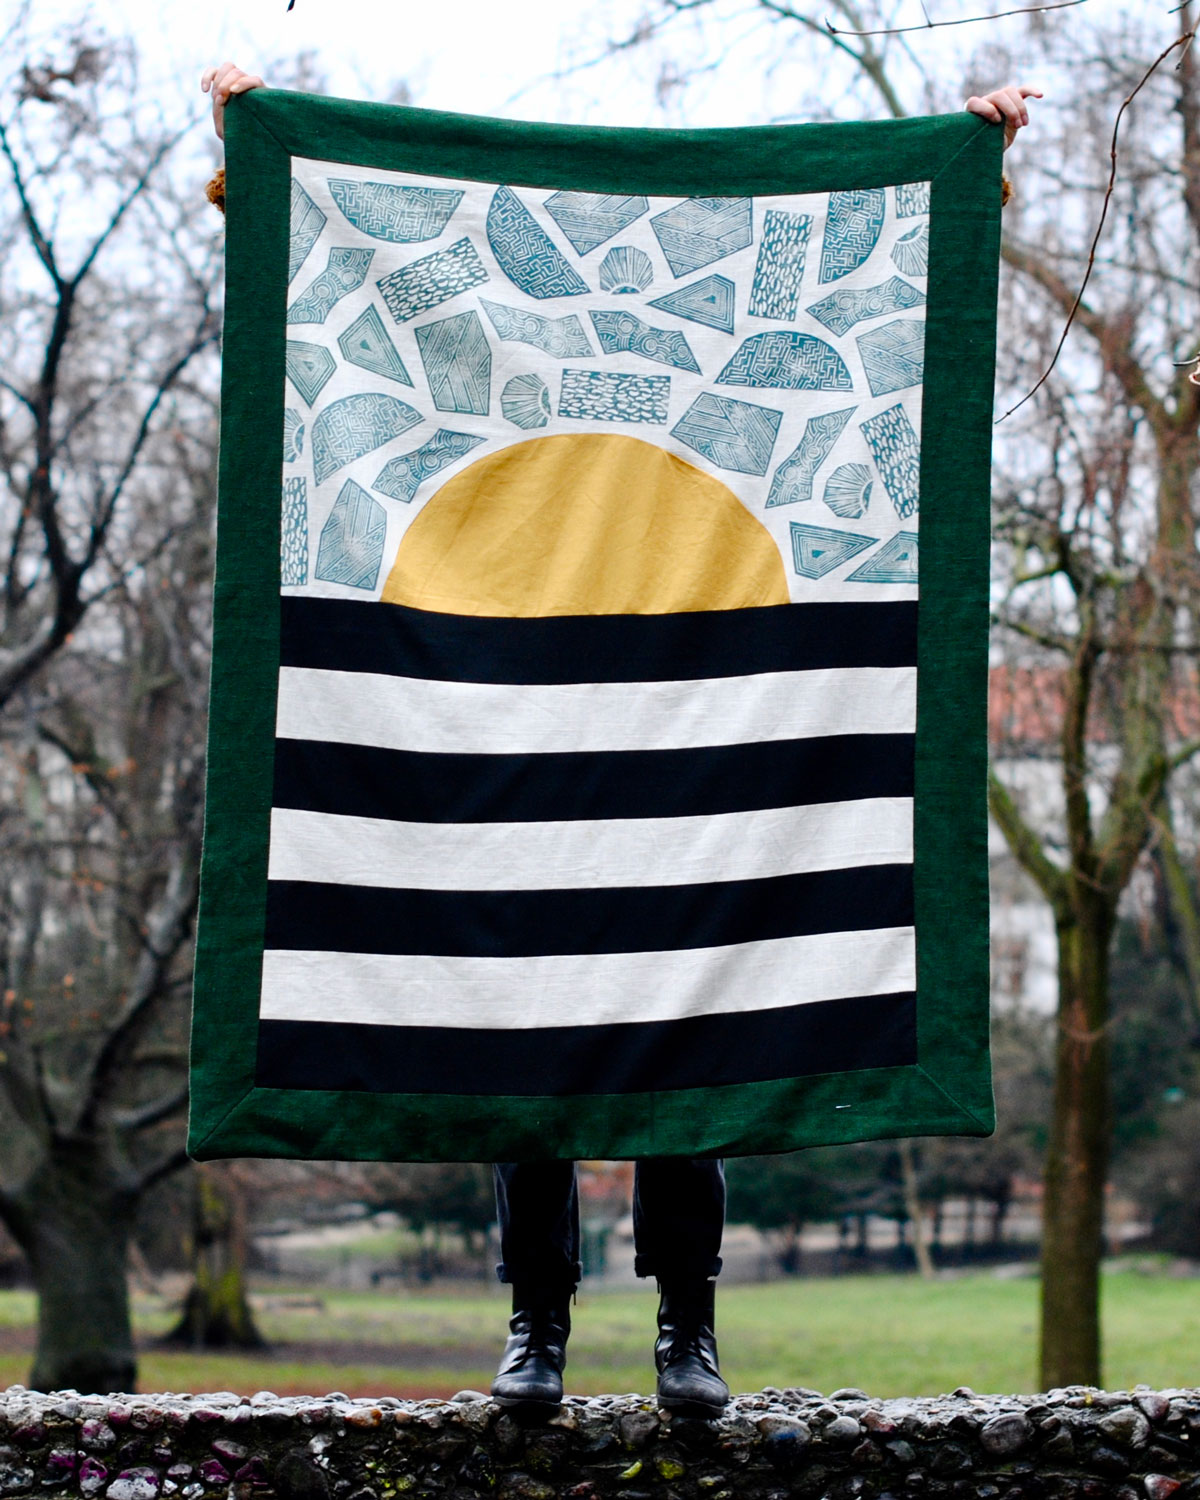 Sun and Stripes by OOY x Print and Border by Ravel